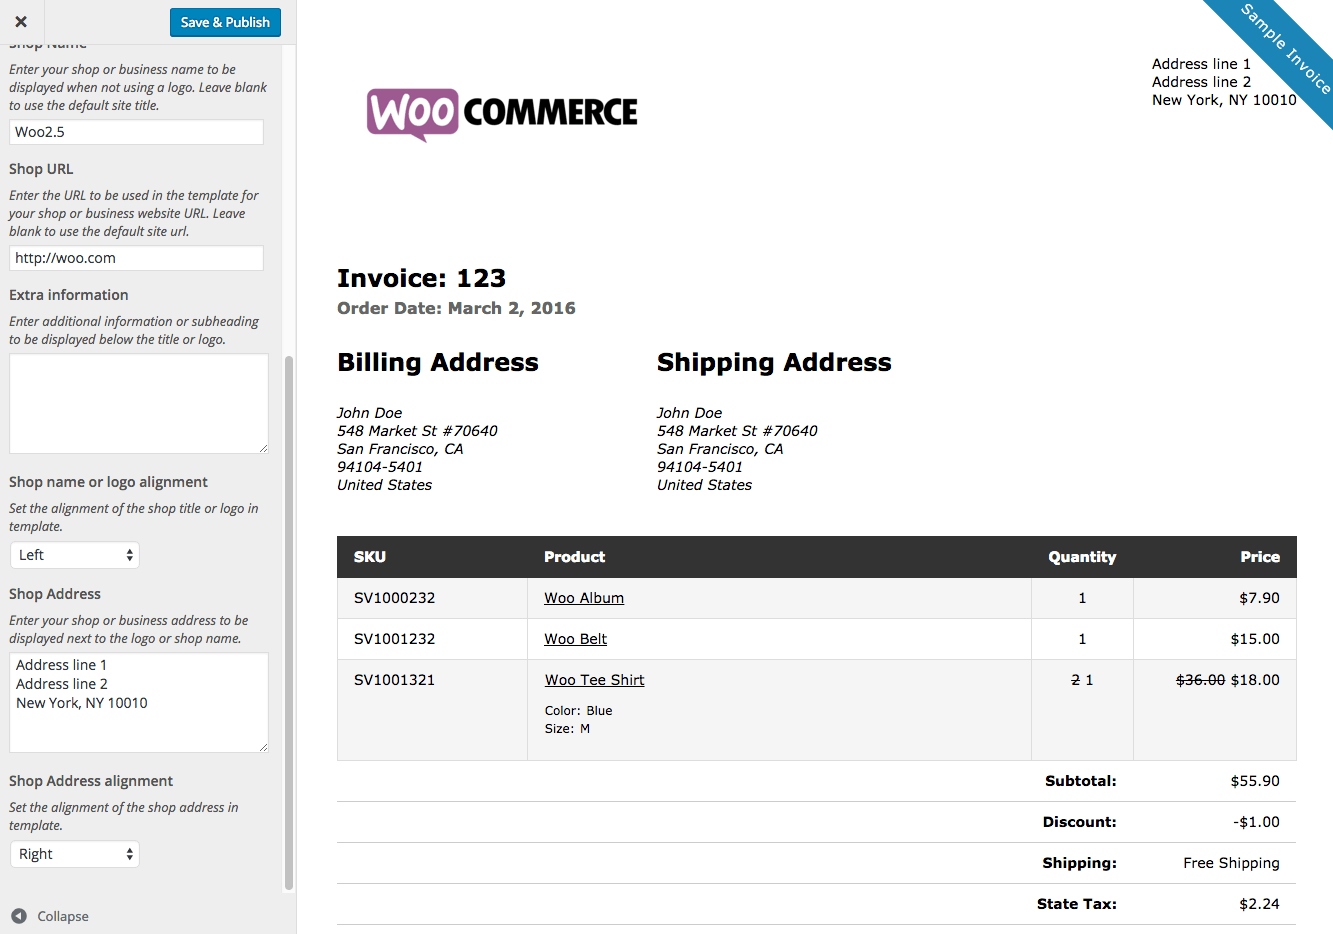 Hucareus  Marvelous Woocommerce Print Invoices Amp Packing Lists  Woocommerce Docs With Excellent Woocommerce Print Invoices  Packing Lists Customizer With Easy On The Eye Read Receipt Hotmail Also Jetblue Receipt Request In Addition Slow Cooker Receipts And Cif Gear Receipt As Well As Petty Cash Receipt Template Additionally Square Email Receipt From Docswoocommercecom With Hucareus  Excellent Woocommerce Print Invoices Amp Packing Lists  Woocommerce Docs With Easy On The Eye Woocommerce Print Invoices  Packing Lists Customizer And Marvelous Read Receipt Hotmail Also Jetblue Receipt Request In Addition Slow Cooker Receipts From Docswoocommercecom